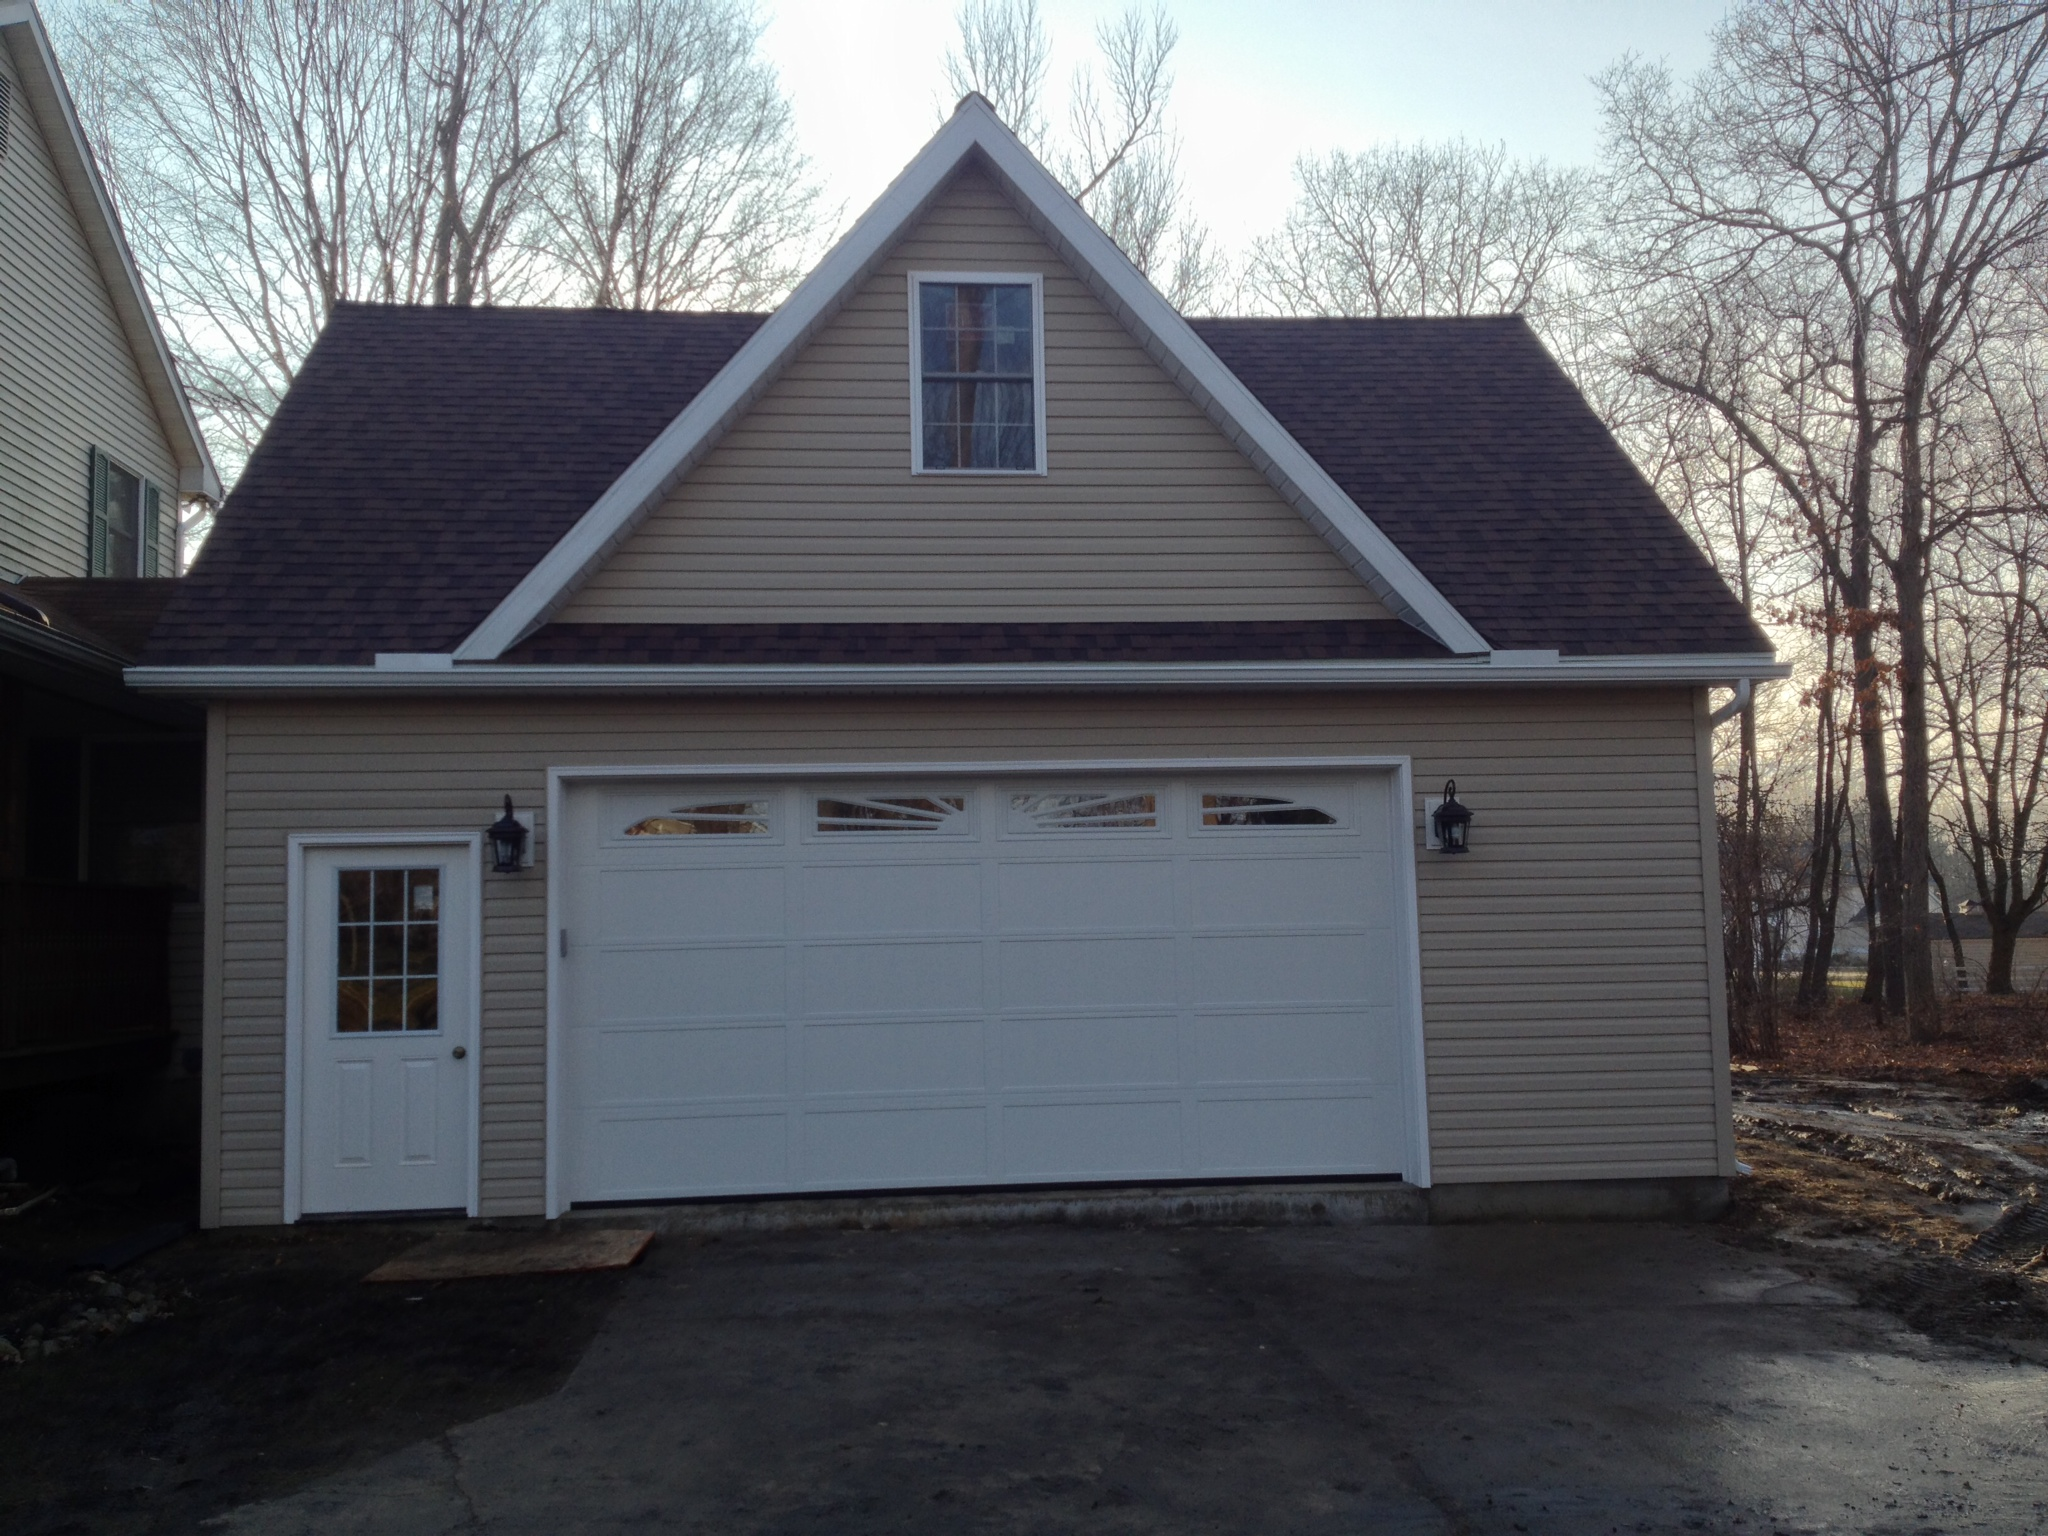 26x34 garage addition Mickleton NJ